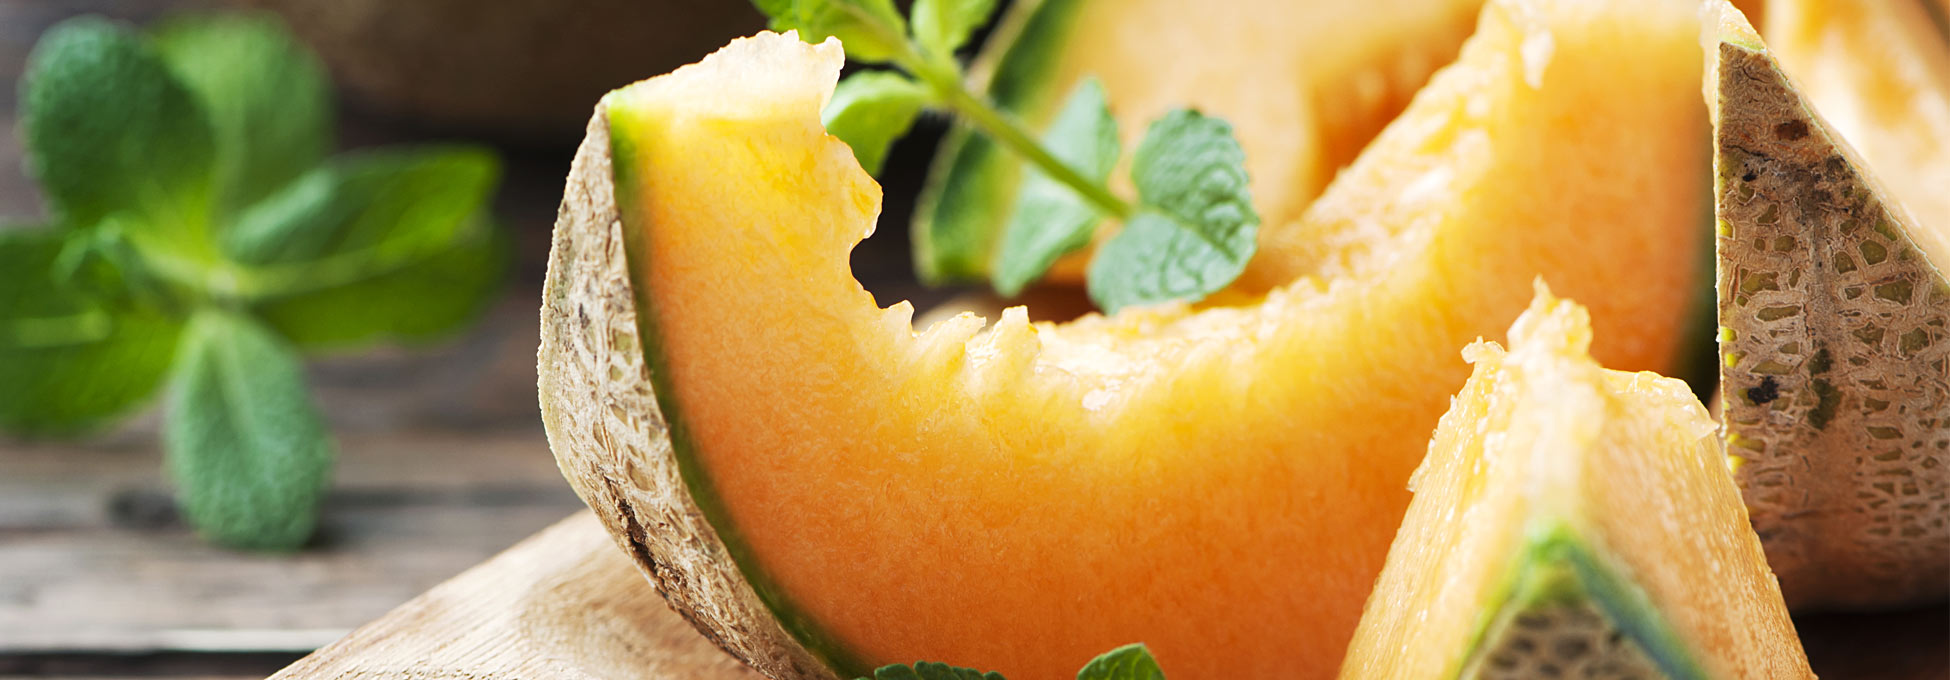 trigs-homepg-banner-cantaloupe-summer-sweet.jpg